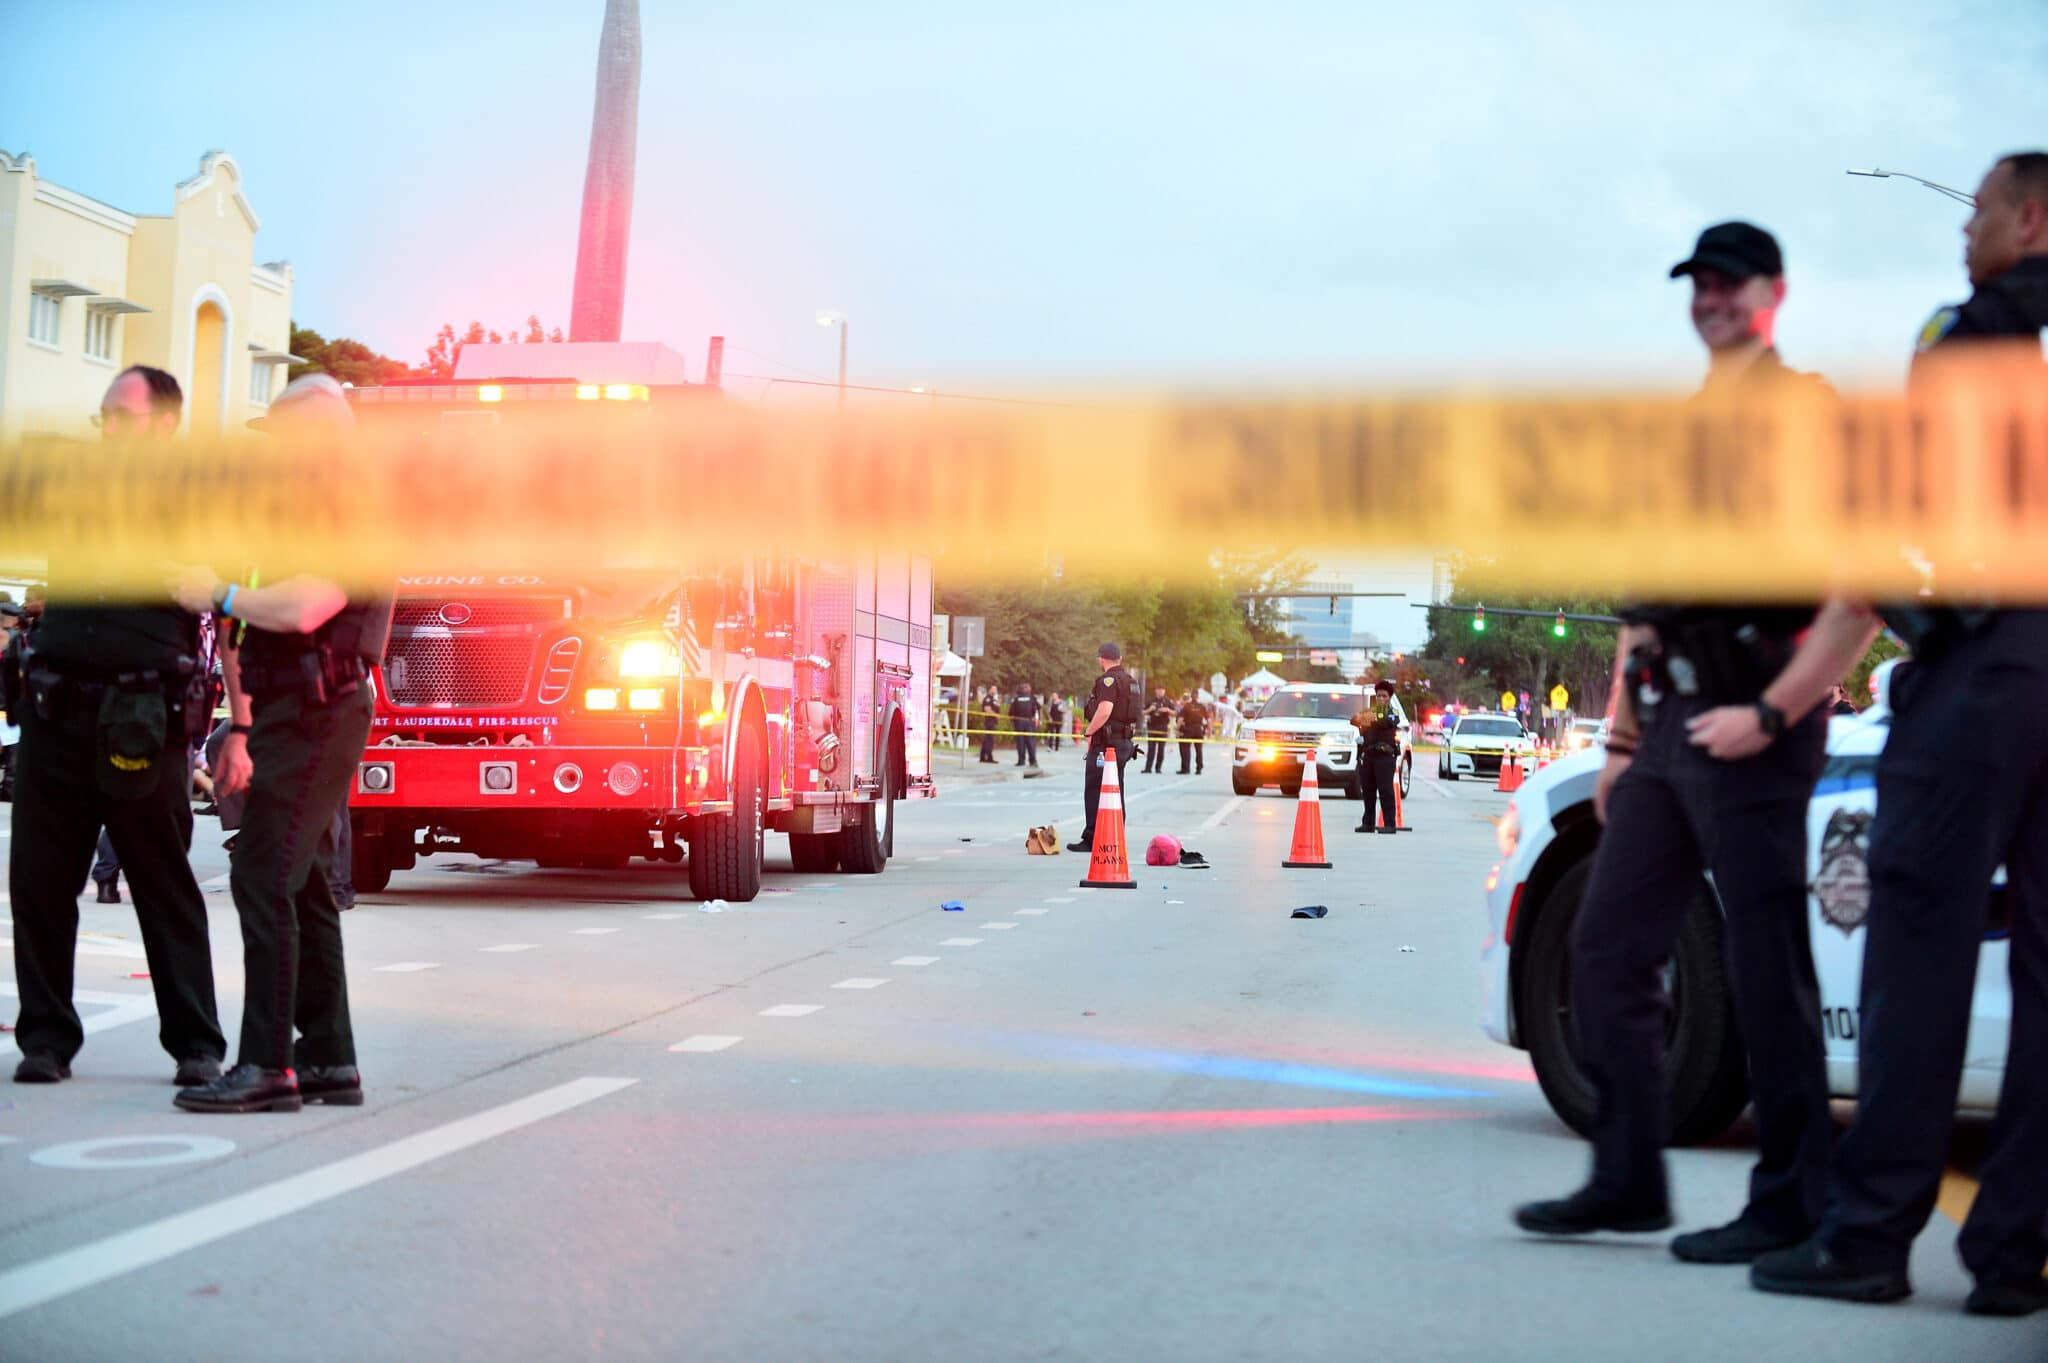 Florida Pride crash that killed one was not a terror attack, officials say